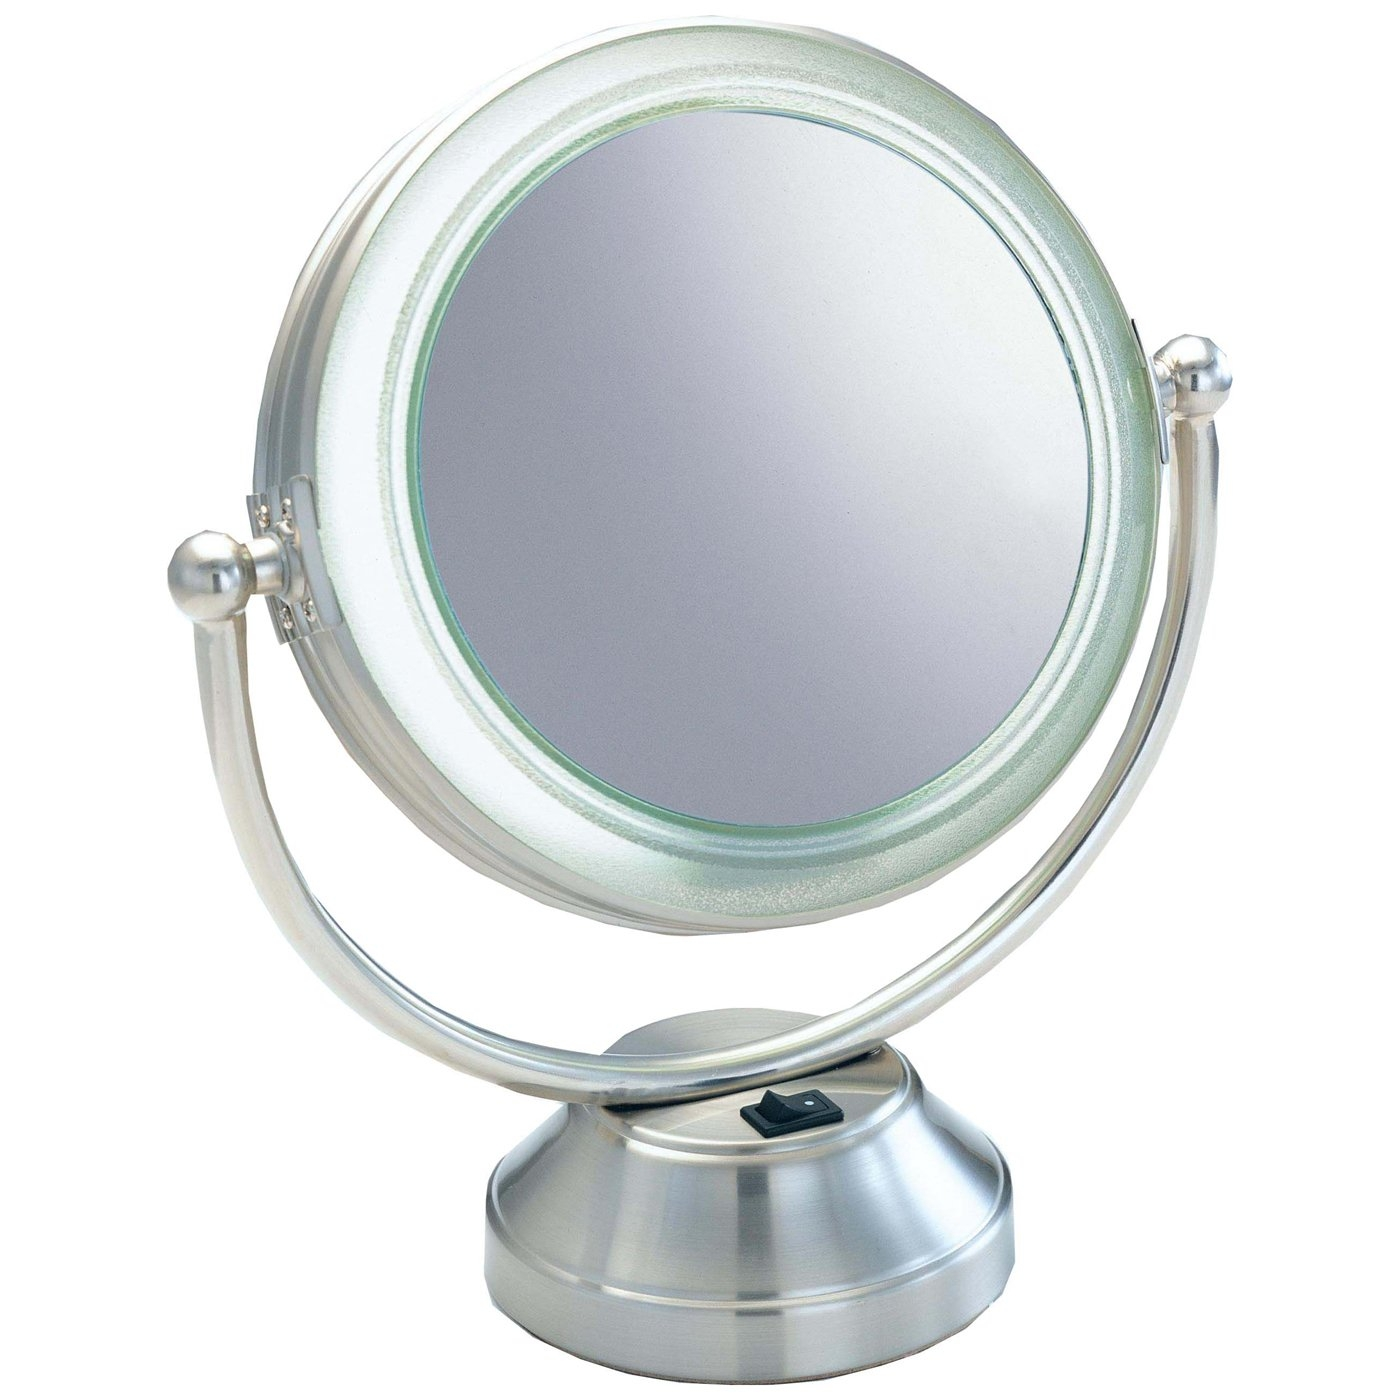 Best Lighted Makeup Mirror | Light Bulbs for Makeup | Wall Mounted Lighted Makeup Mirror